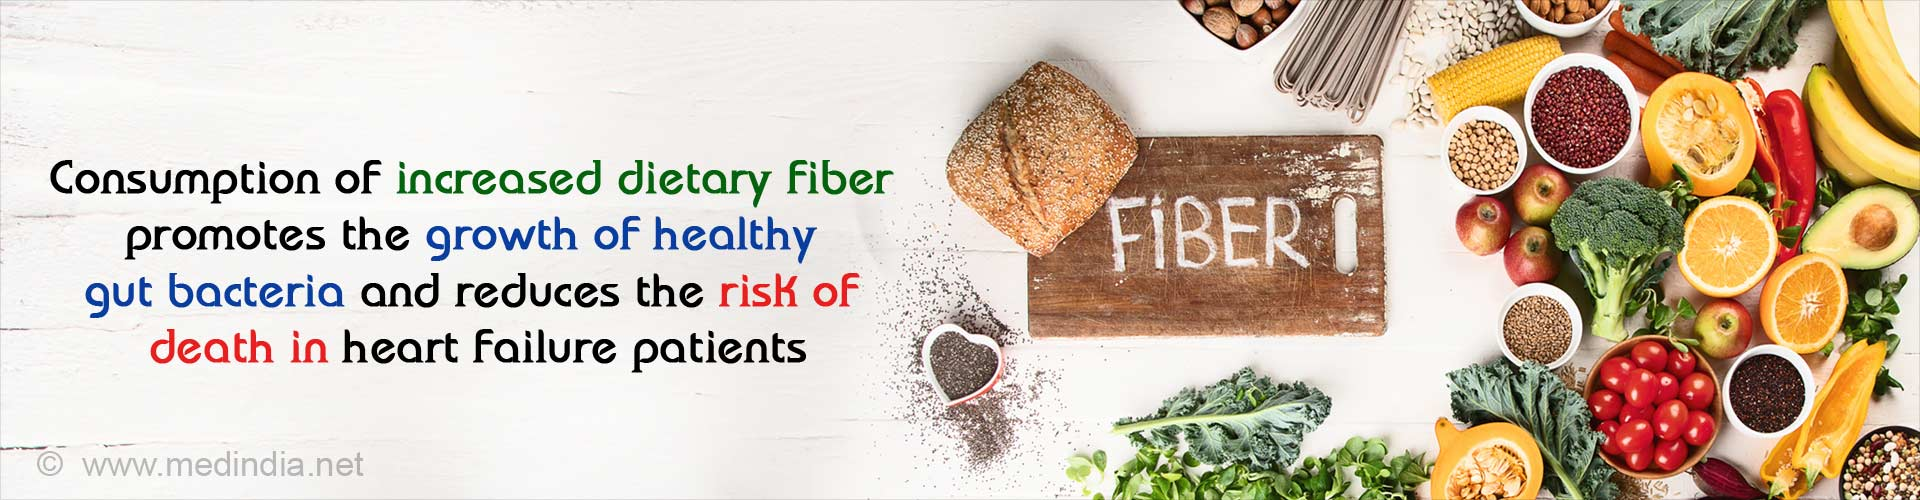 Consumption of increased dietary fiber promotes the growth of healthy gut bacteria and reduces the risk of death in heart failure patients.